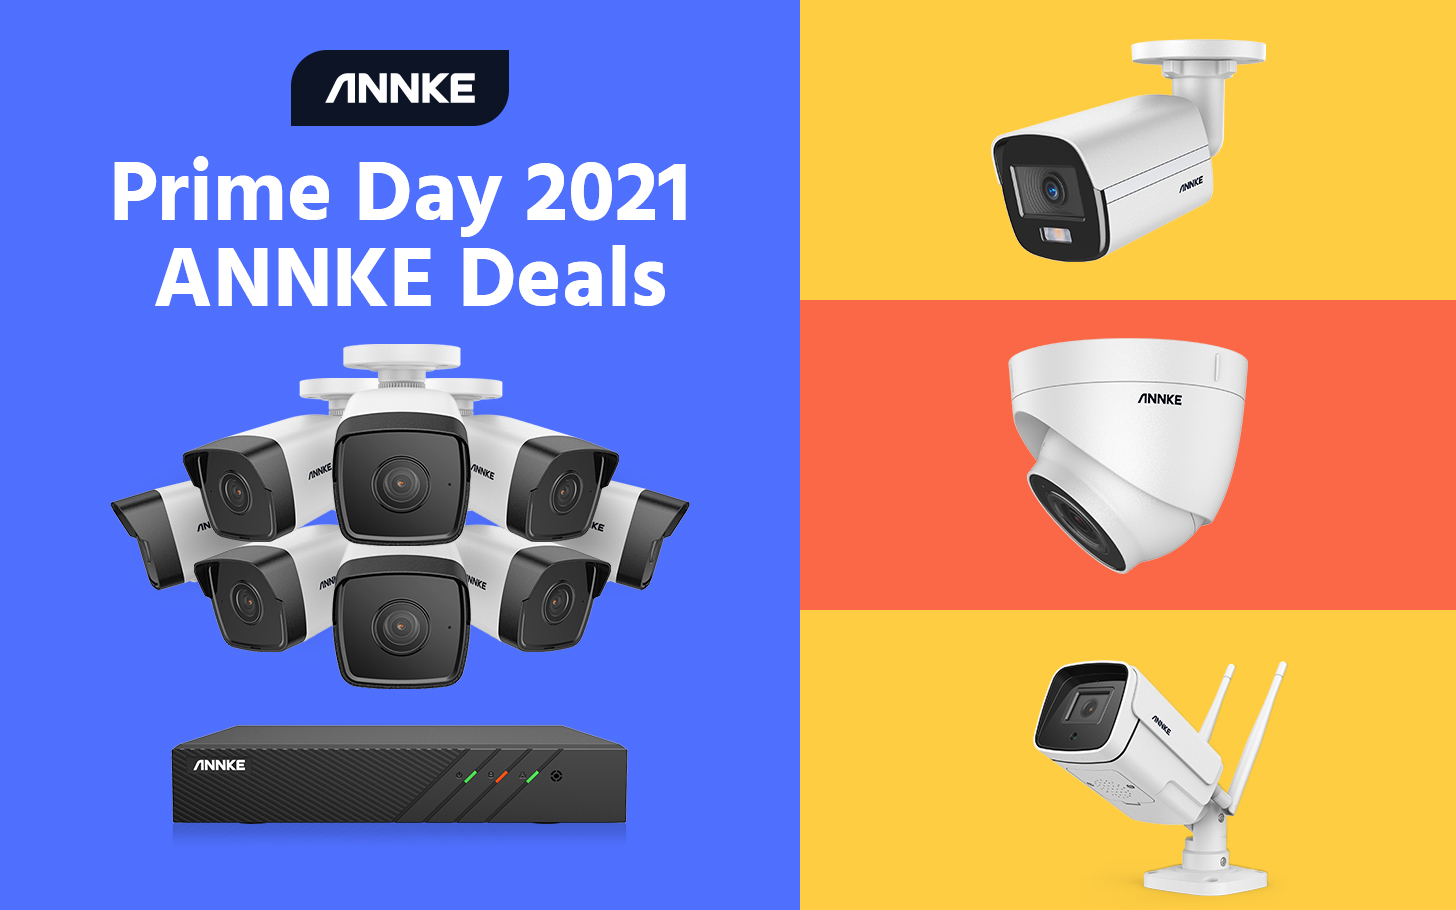 Some of ANNKE's most popular security cameras are 30% off through Prime Day